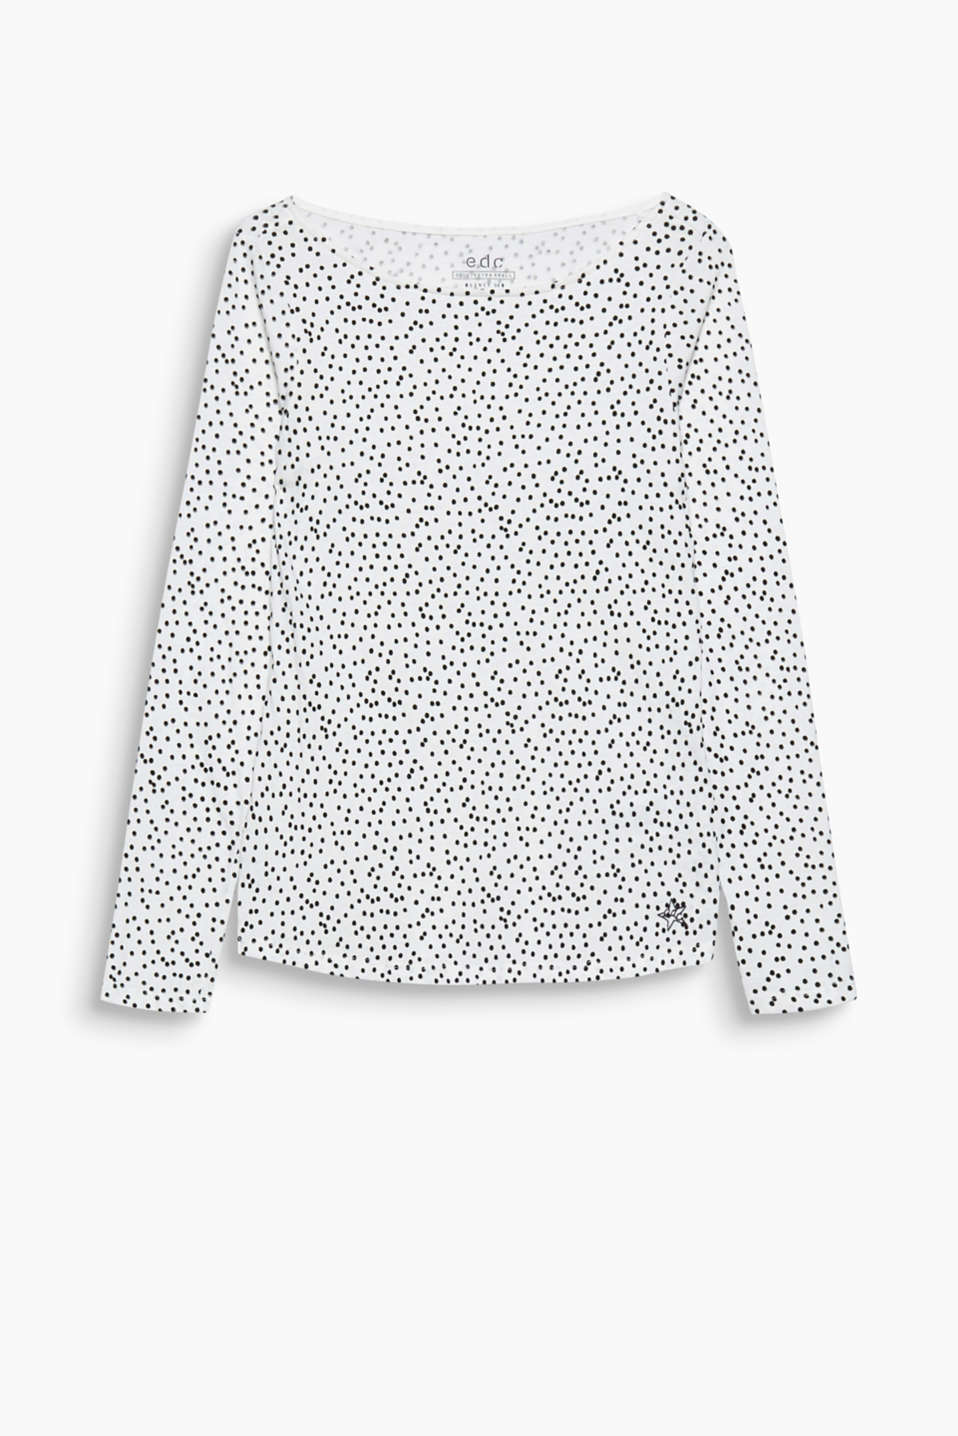 Lovely polka dots! A velvety soft polka dot print gives this long sleeve top an exceptionally charming look.